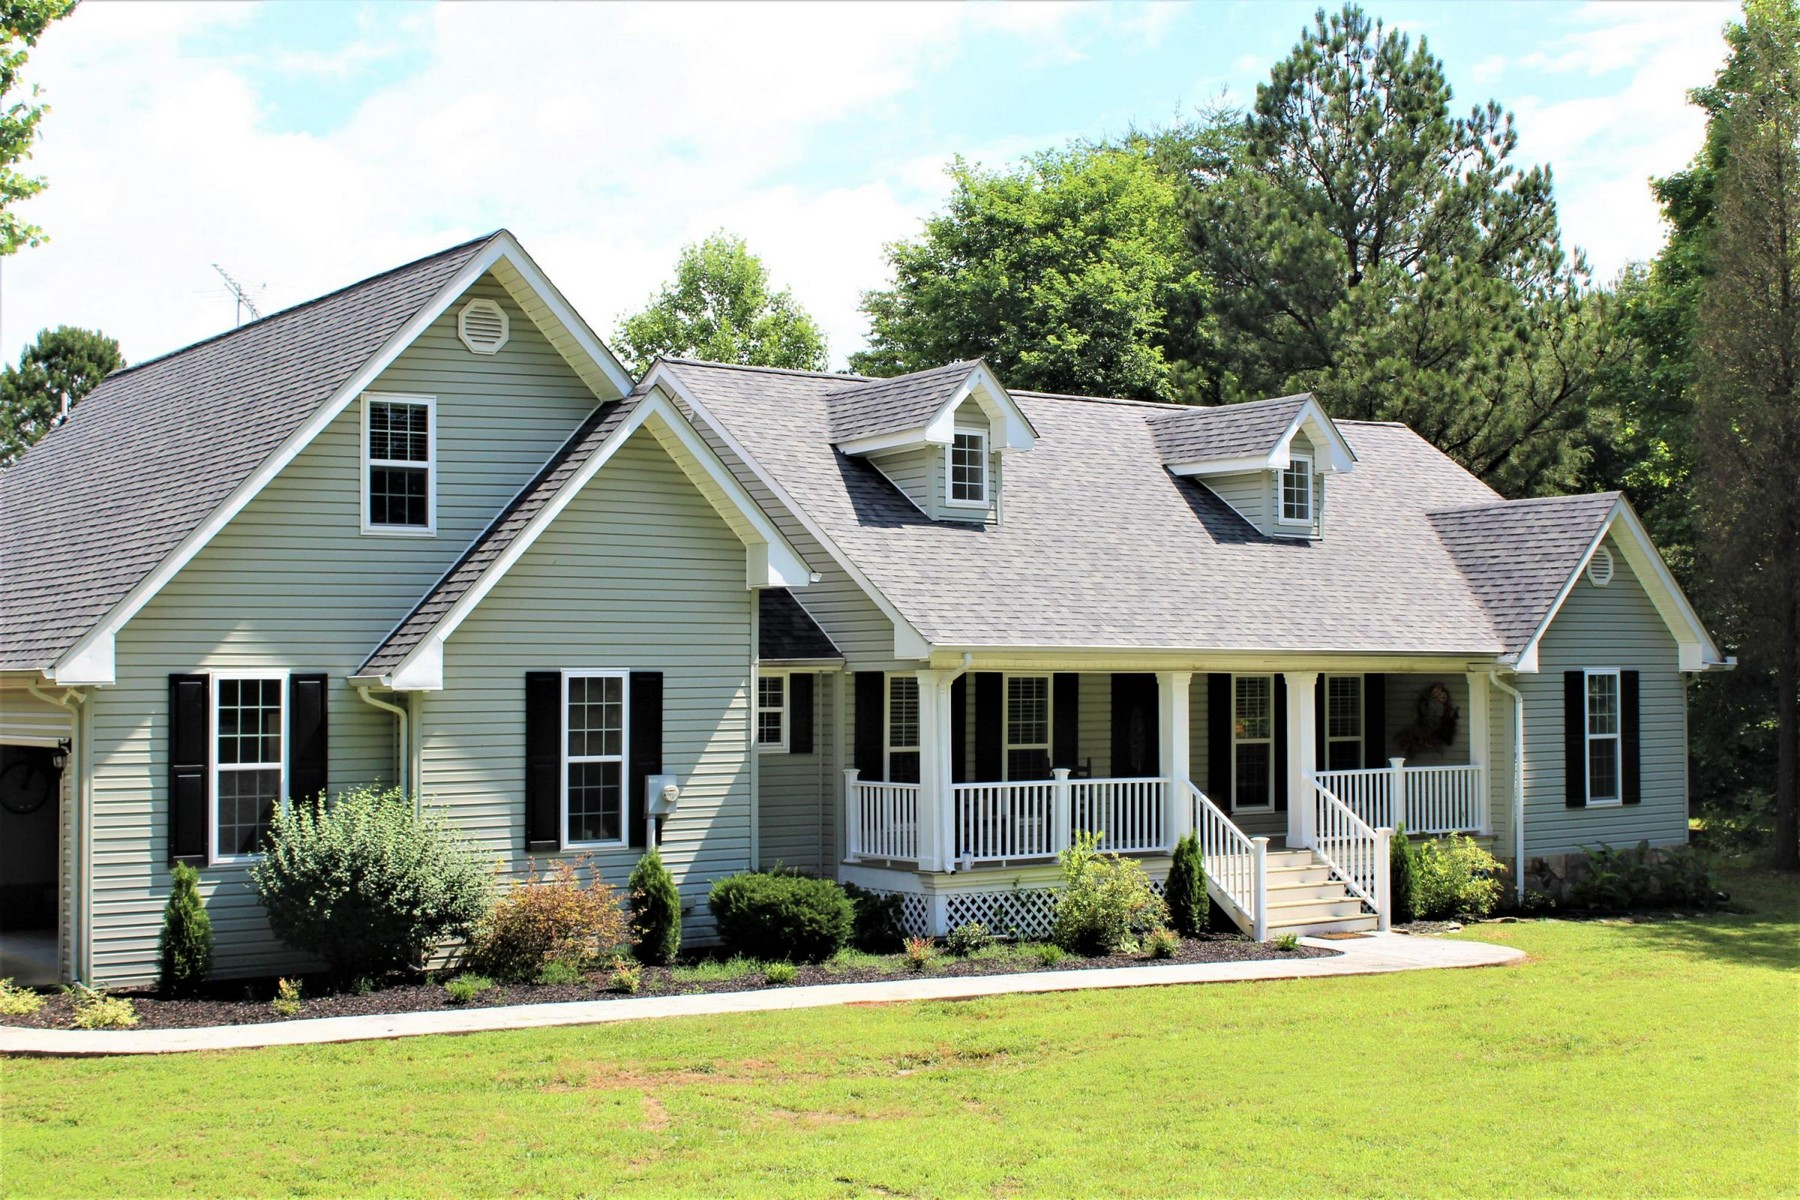 Single Family Home for Sale at Newly Remodeled Cape Cod 213 Fagin Lane Madisonville, Tennessee 37354 United States